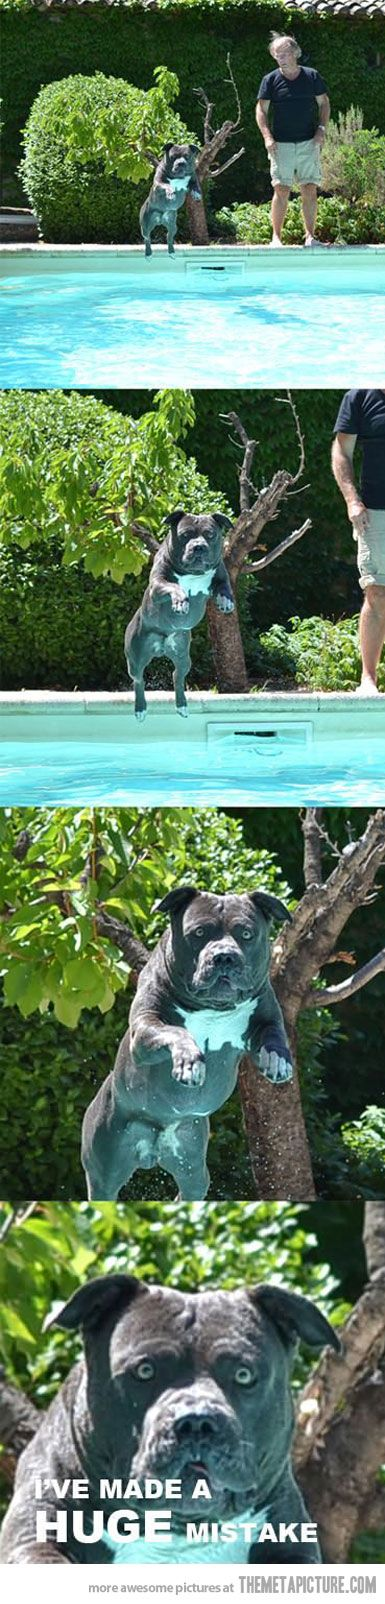 Jump in the pool, they said…